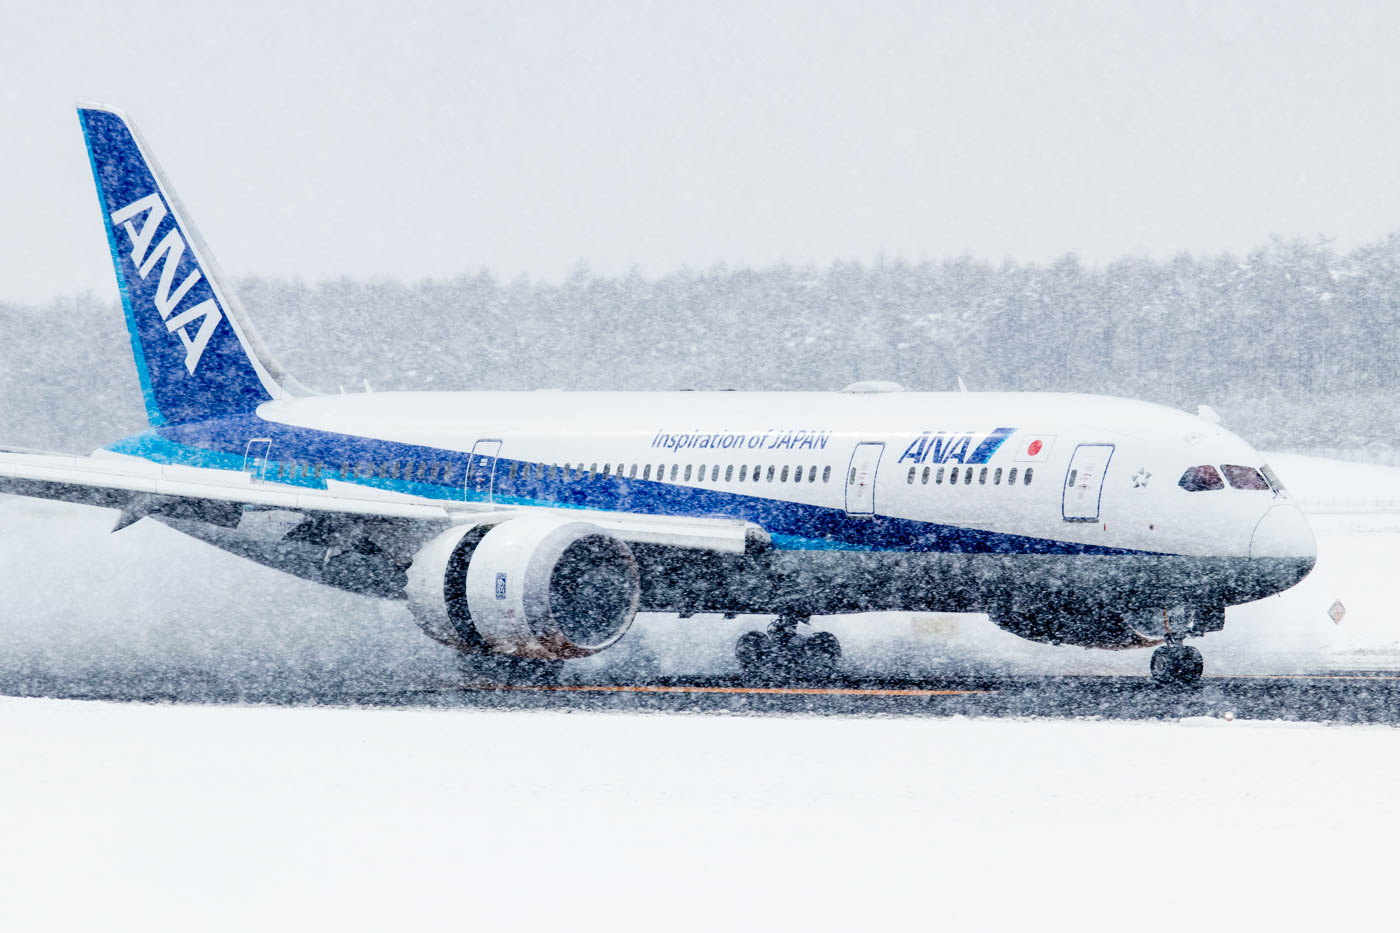 ANA 787 Landing in Snow